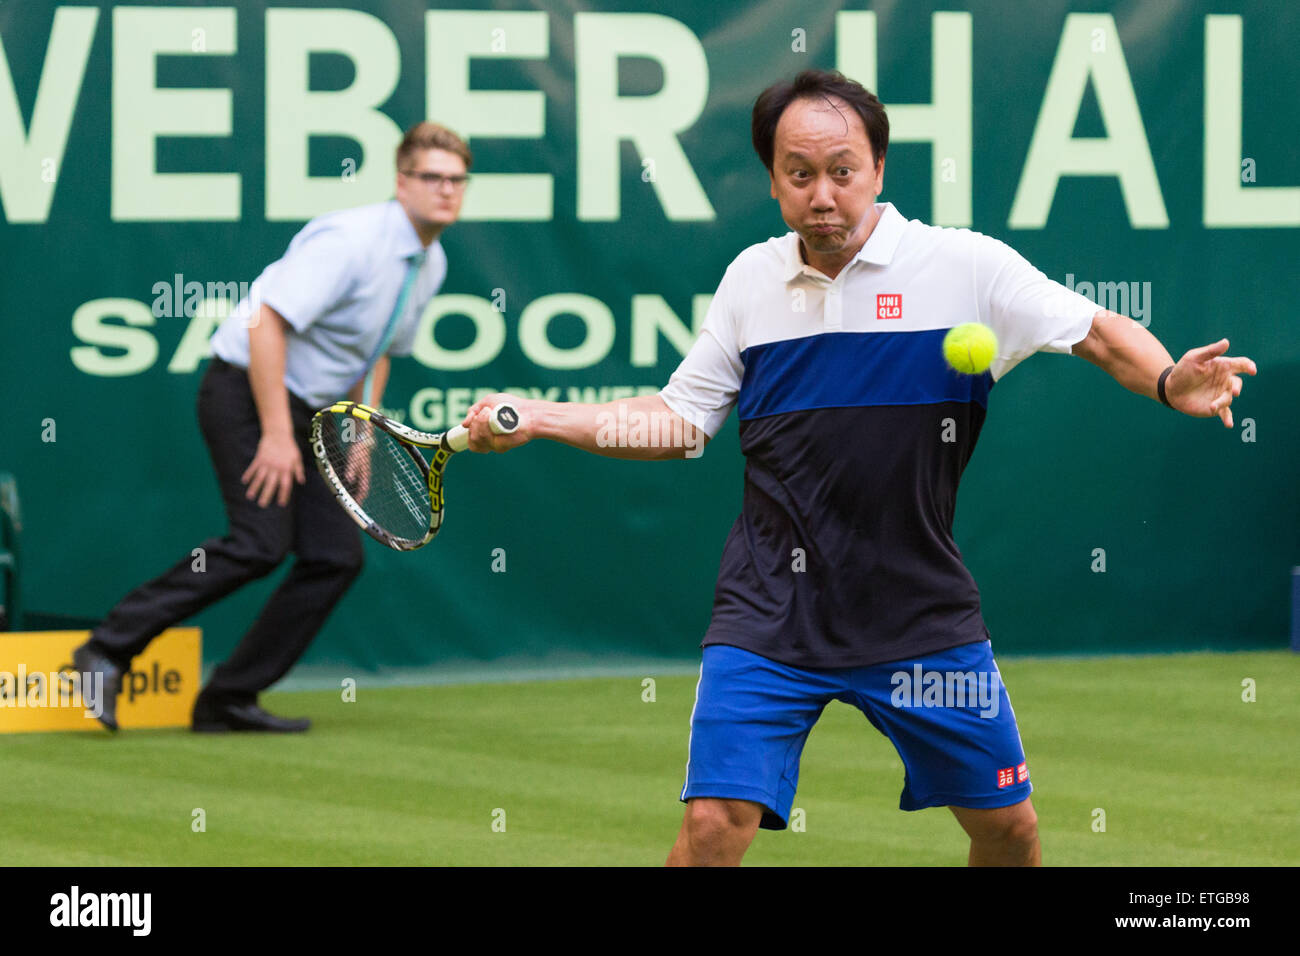 Michael Chang plays in an exhibition match at the Gerry Weber